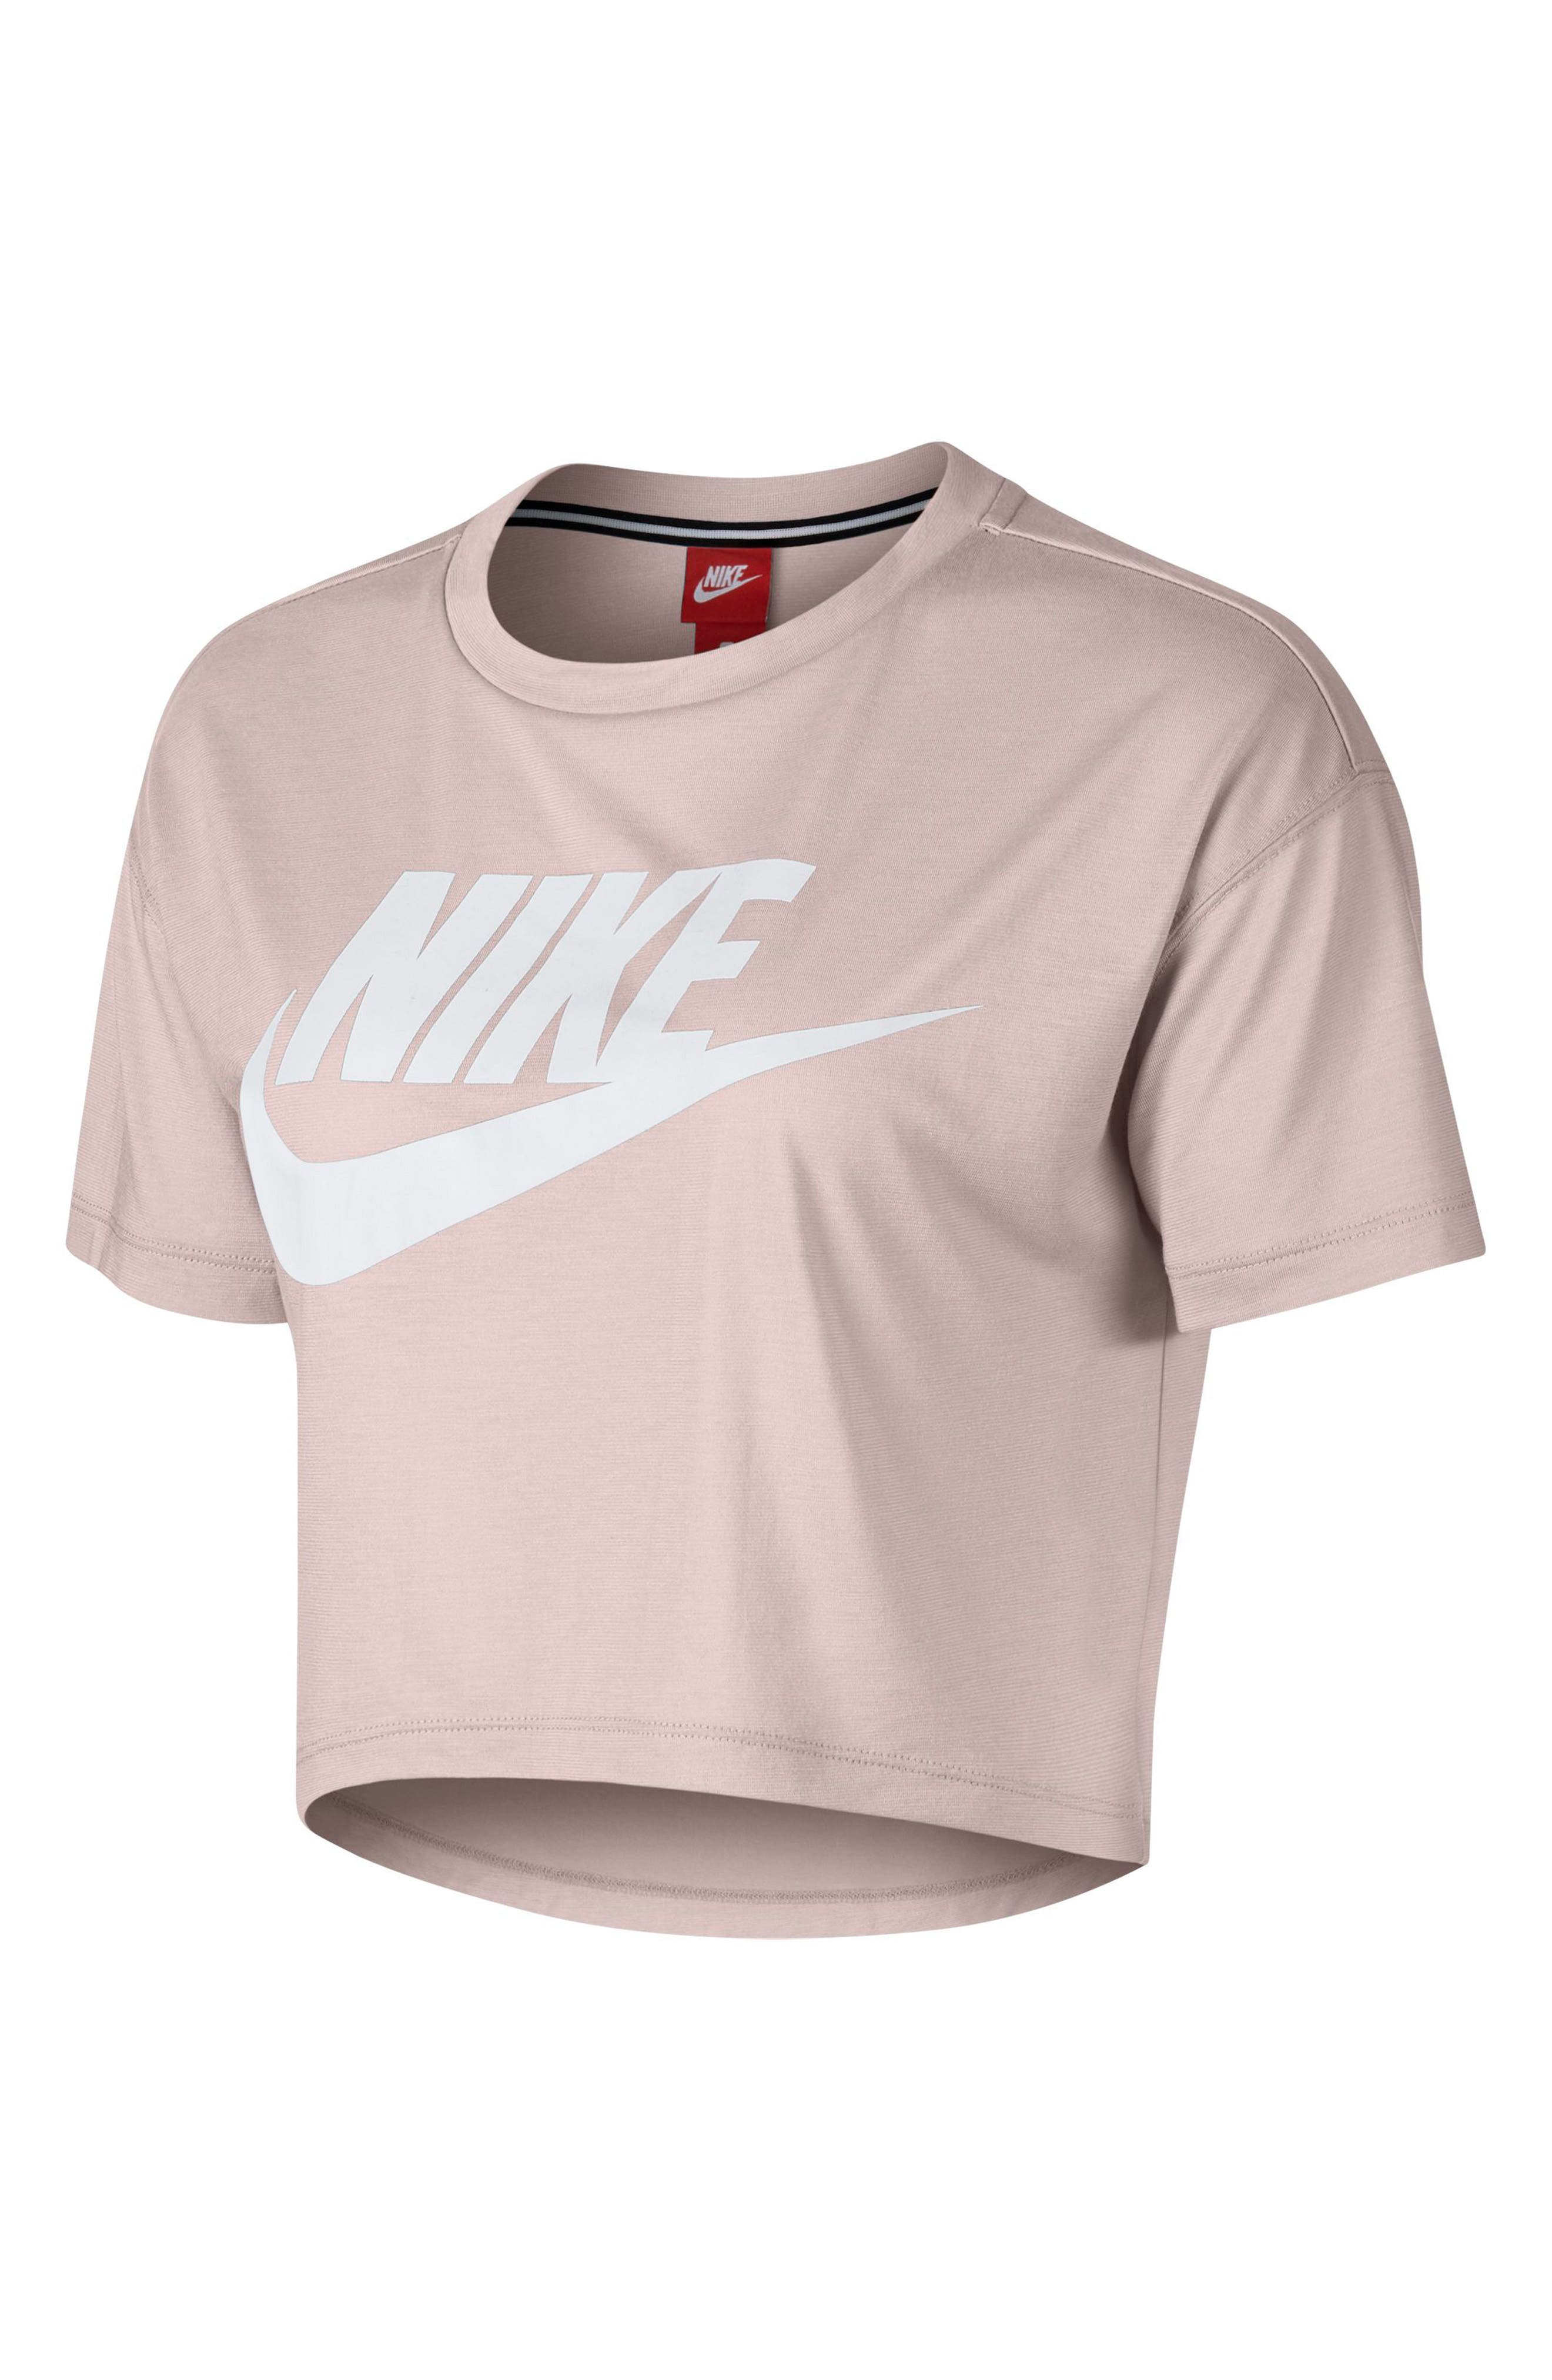 Sportswear Essential Women's Crop Top,                             Main thumbnail 1, color,                             Barely Rose/ White